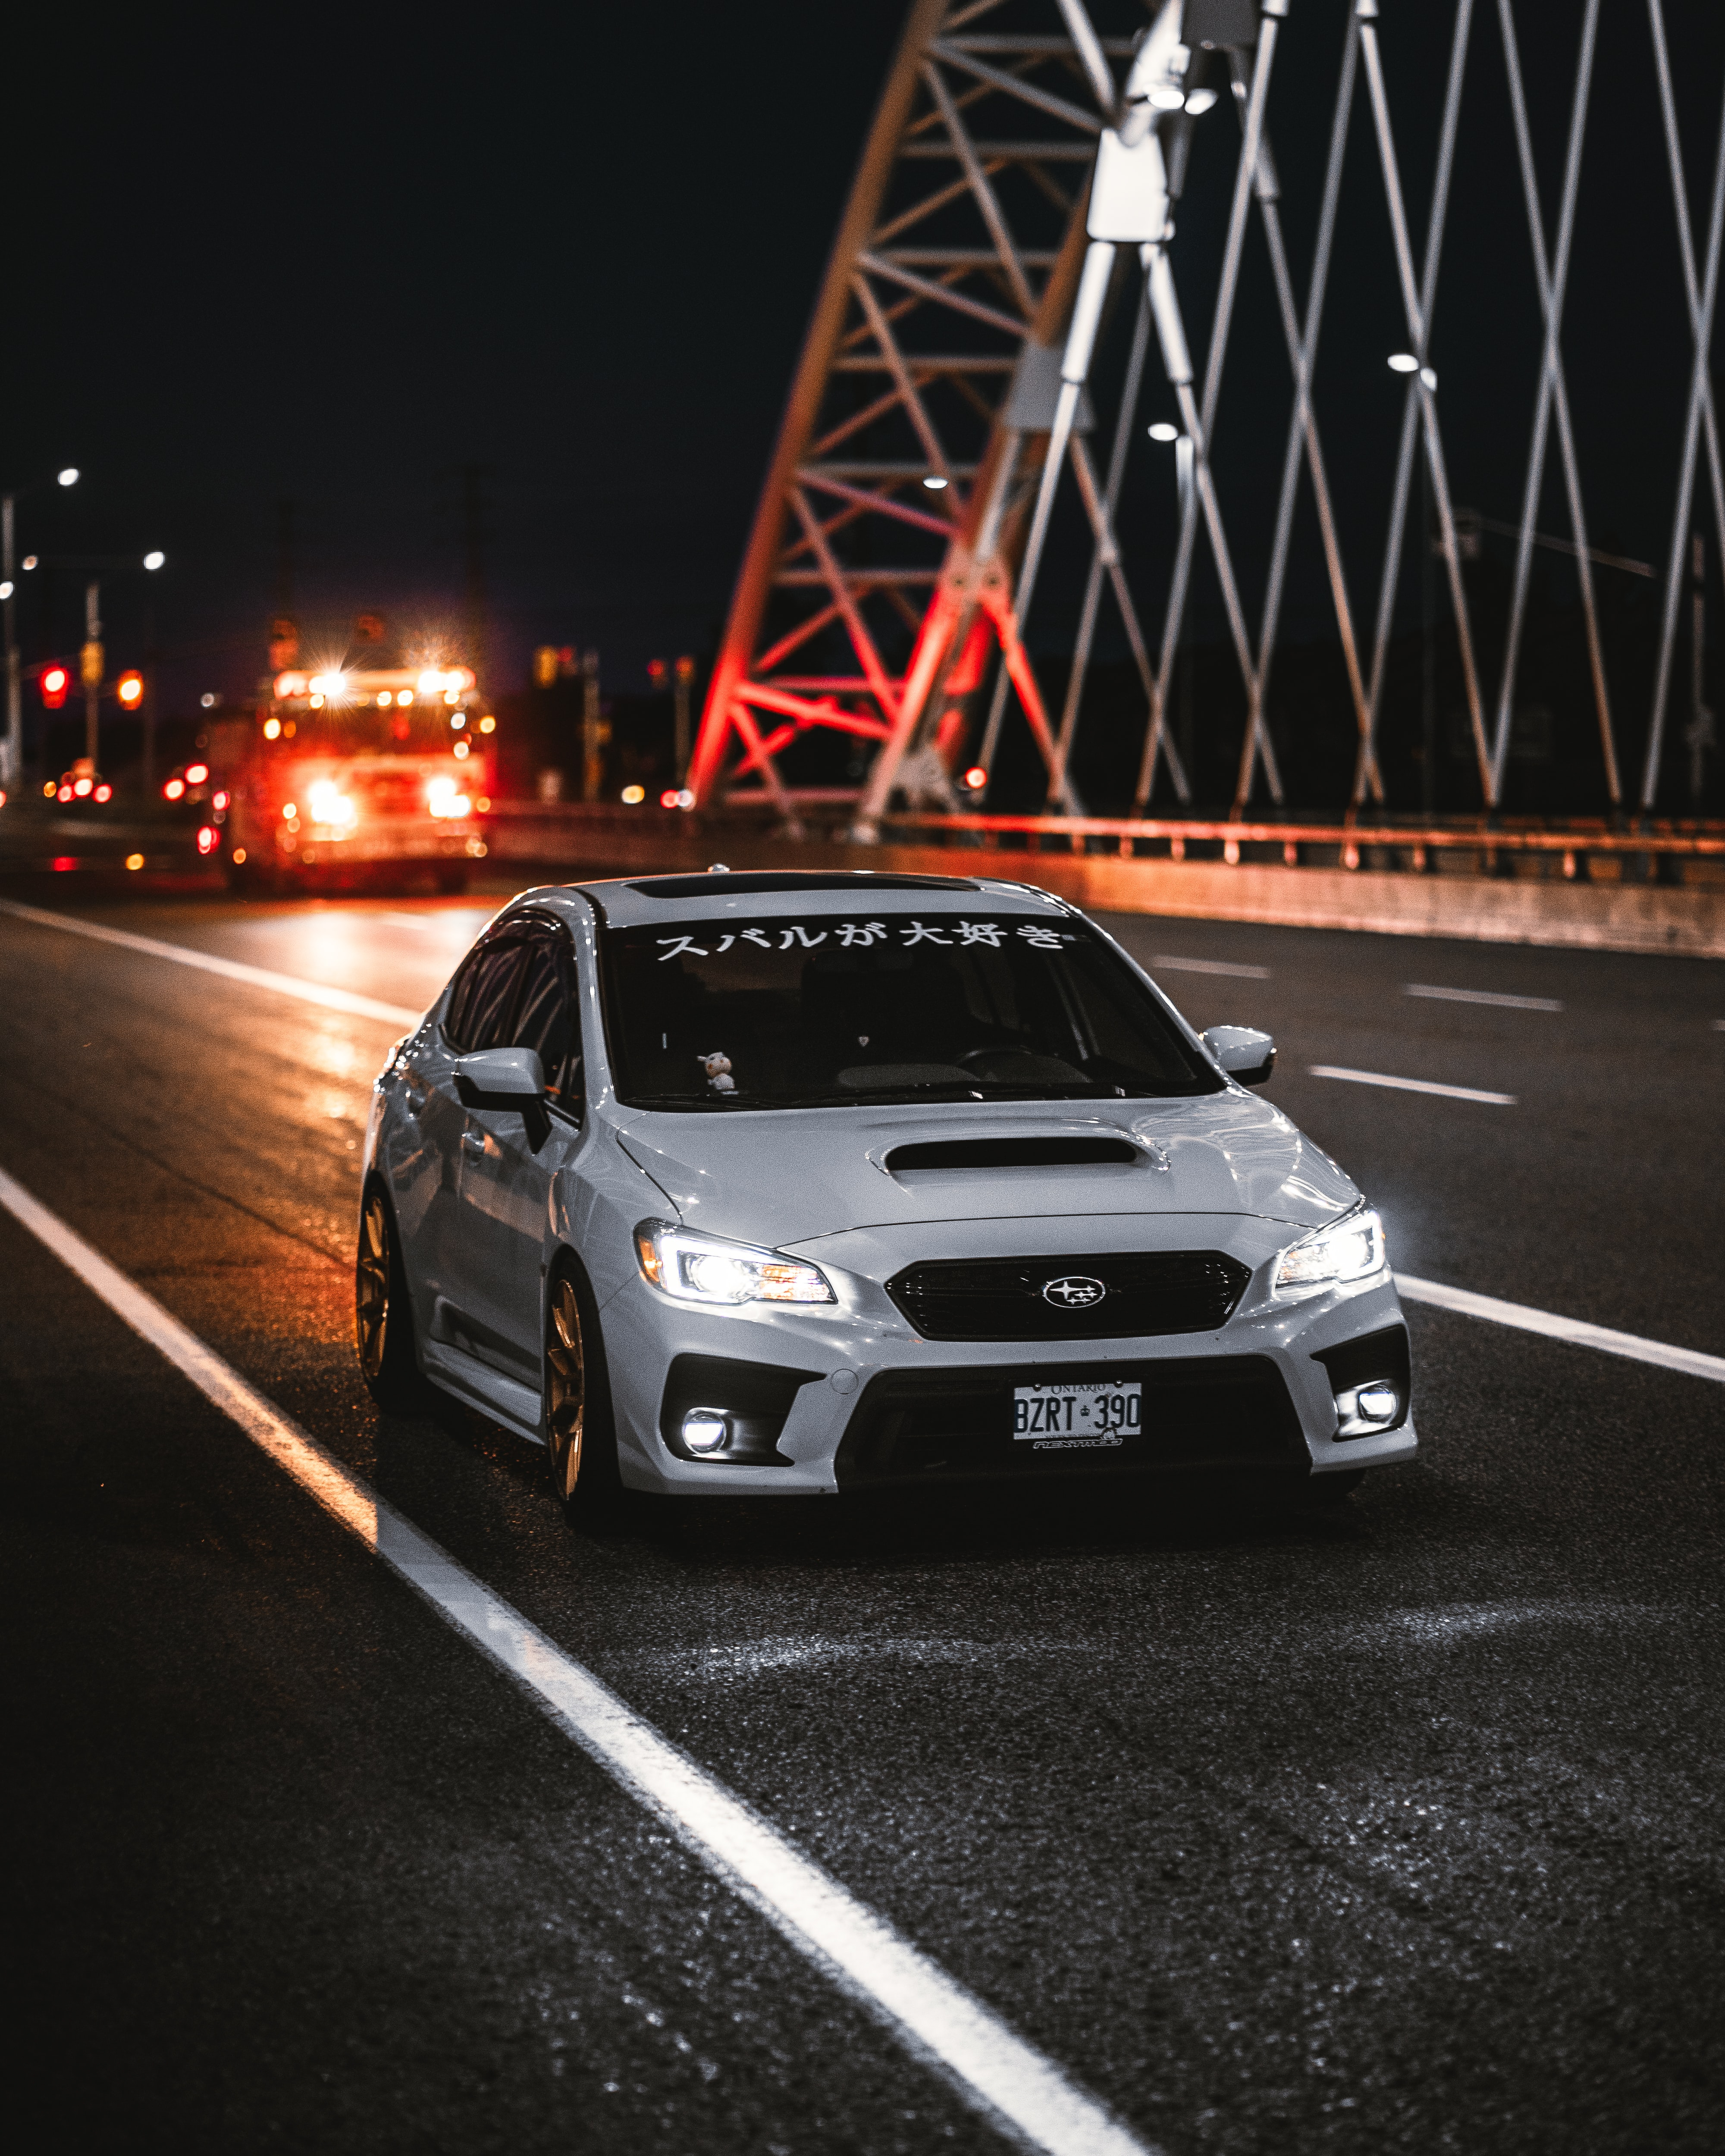 104914 Screensavers and Wallpapers Subaru for phone. Download Sports, Hieroglyph, Subaru, Cars, Road, Car, Front View, Sports Car, Subaru Wrx pictures for free